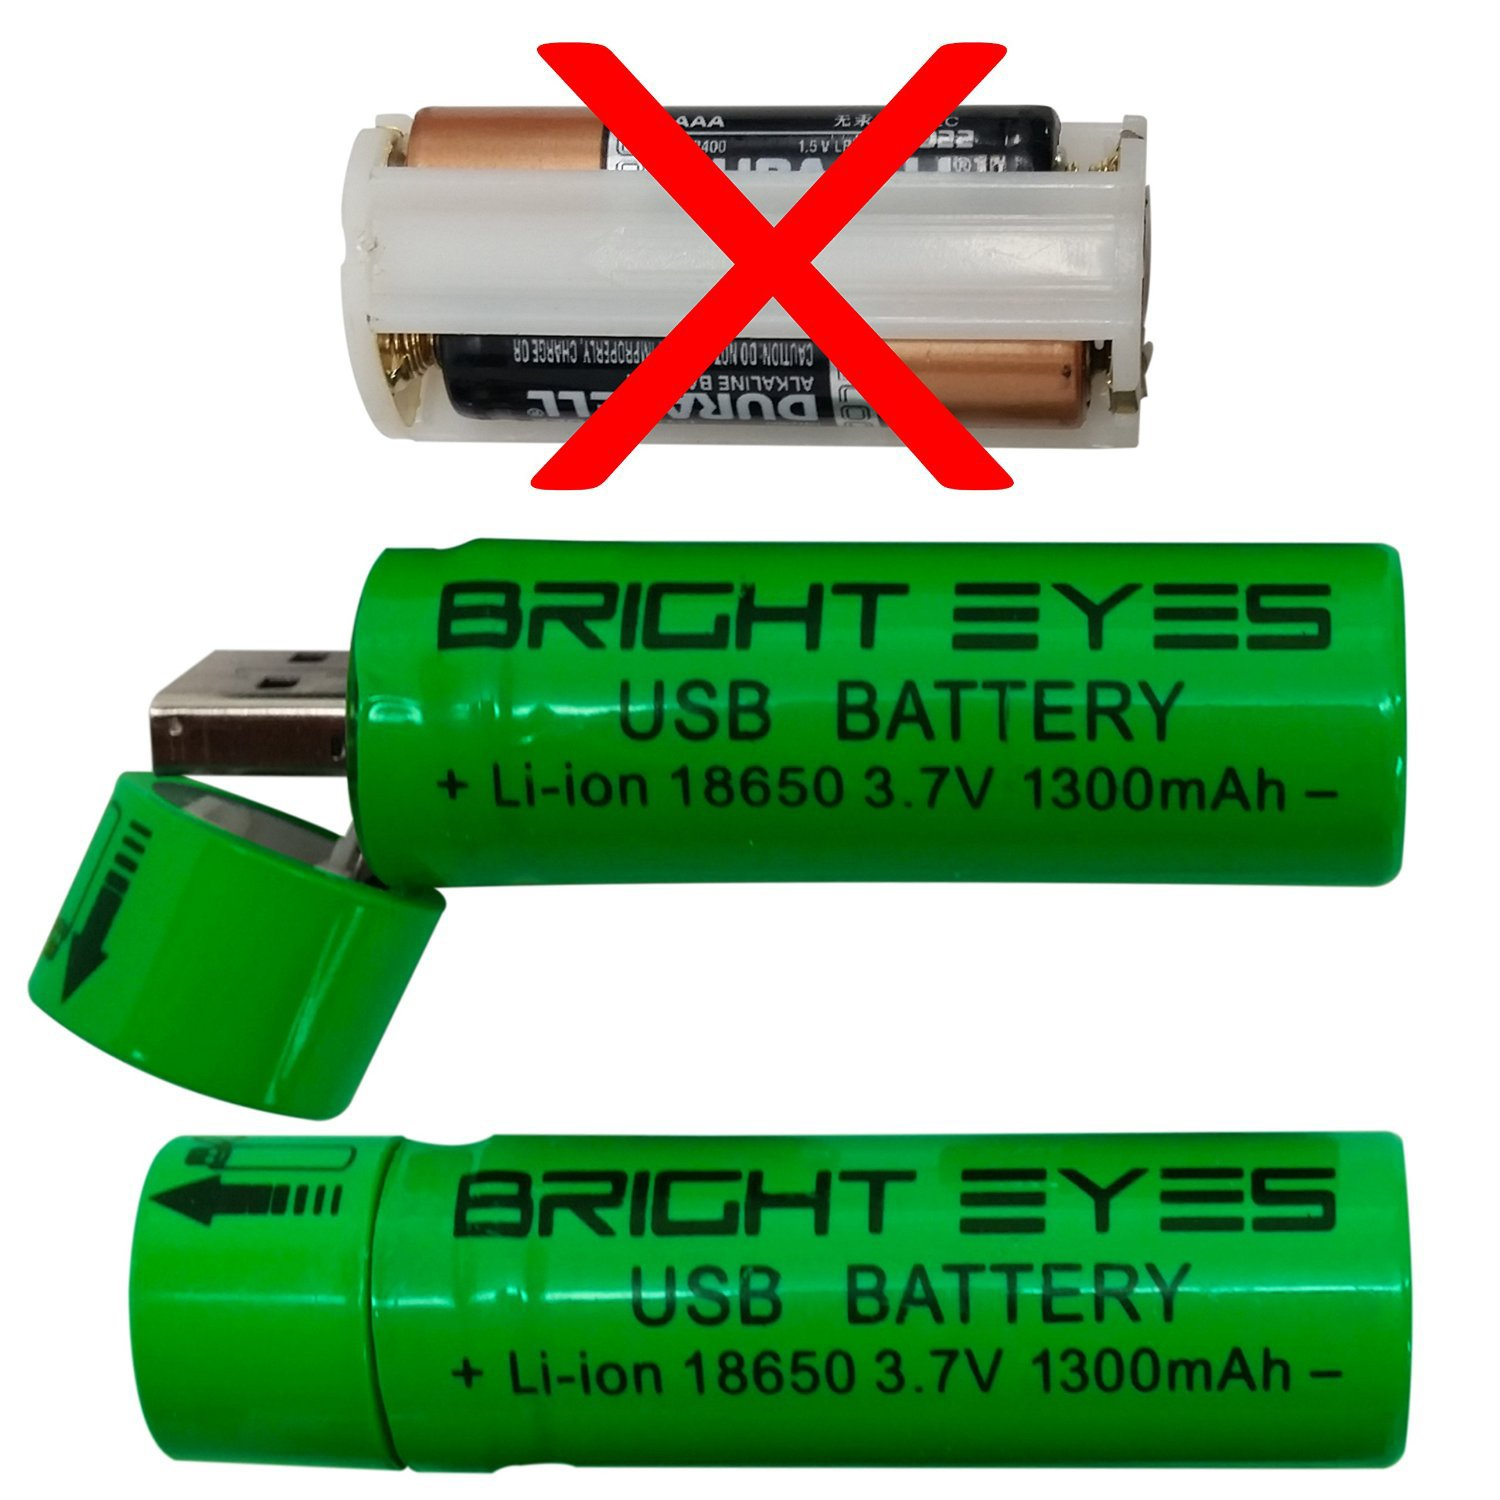 bright eyes aaa battery holder replacement rechargeable